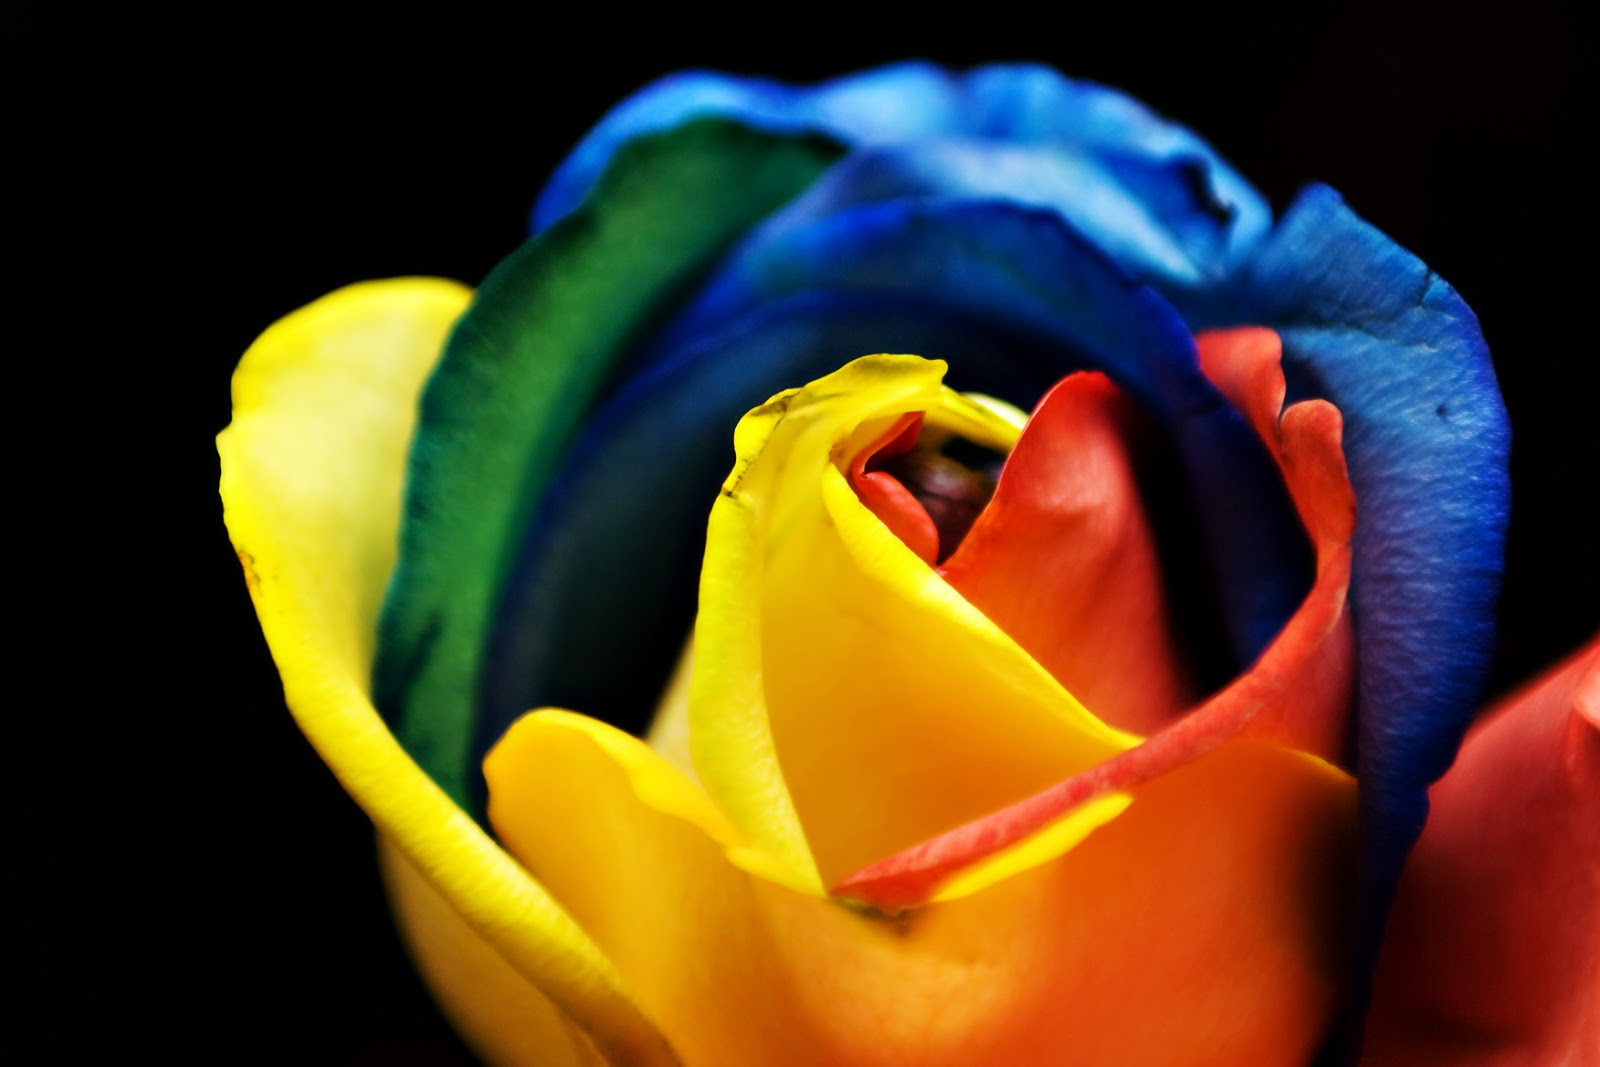 Nameaholics anonymous name rainbow red for Rainbow colored rose